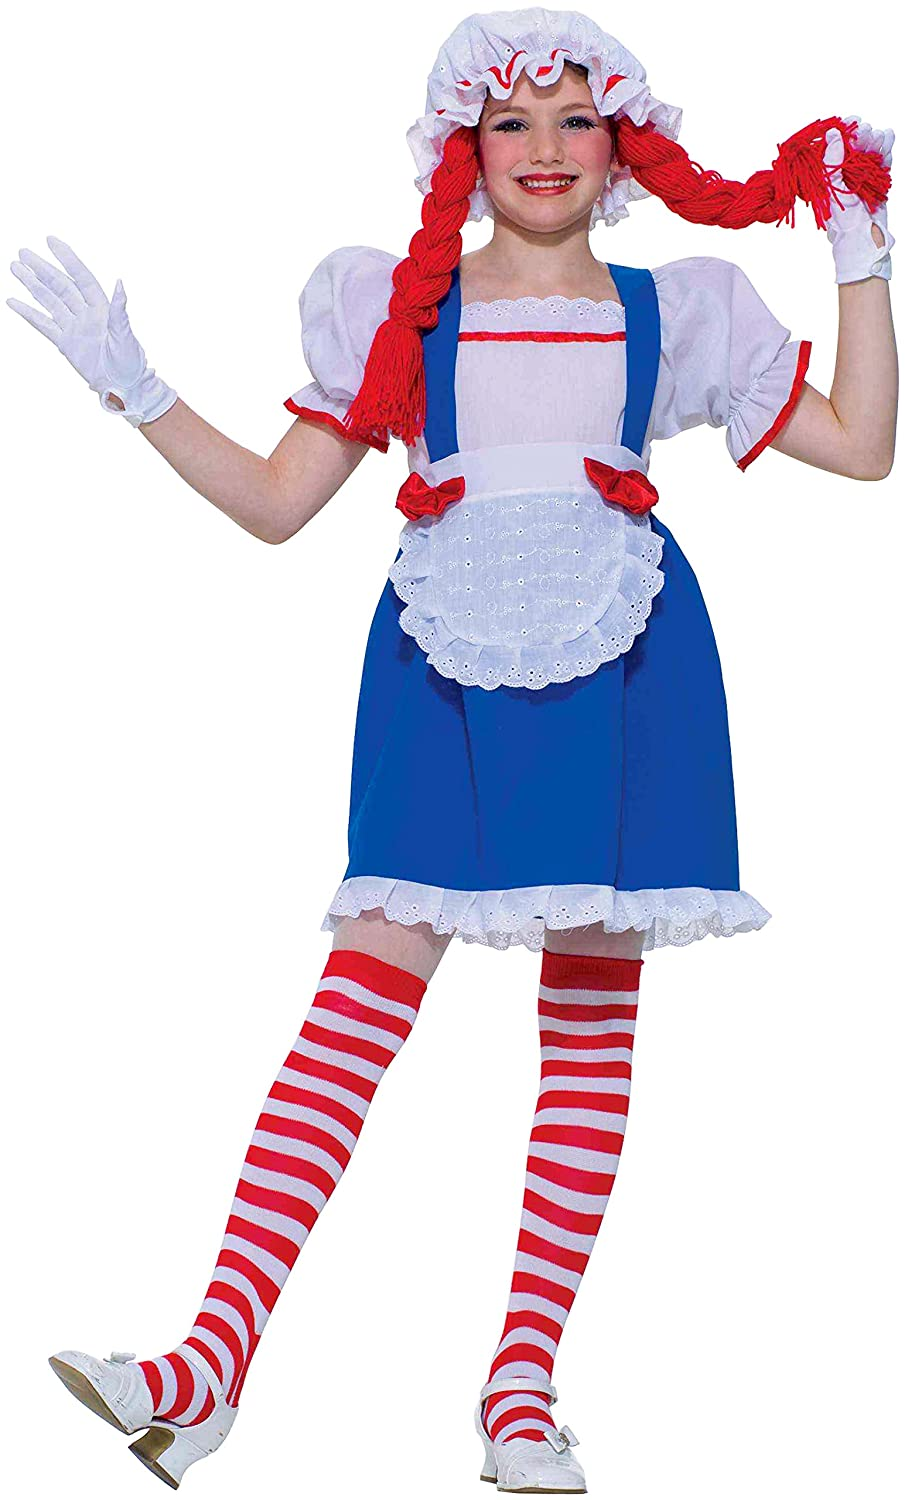 Costume raggedy adult ann for and andy